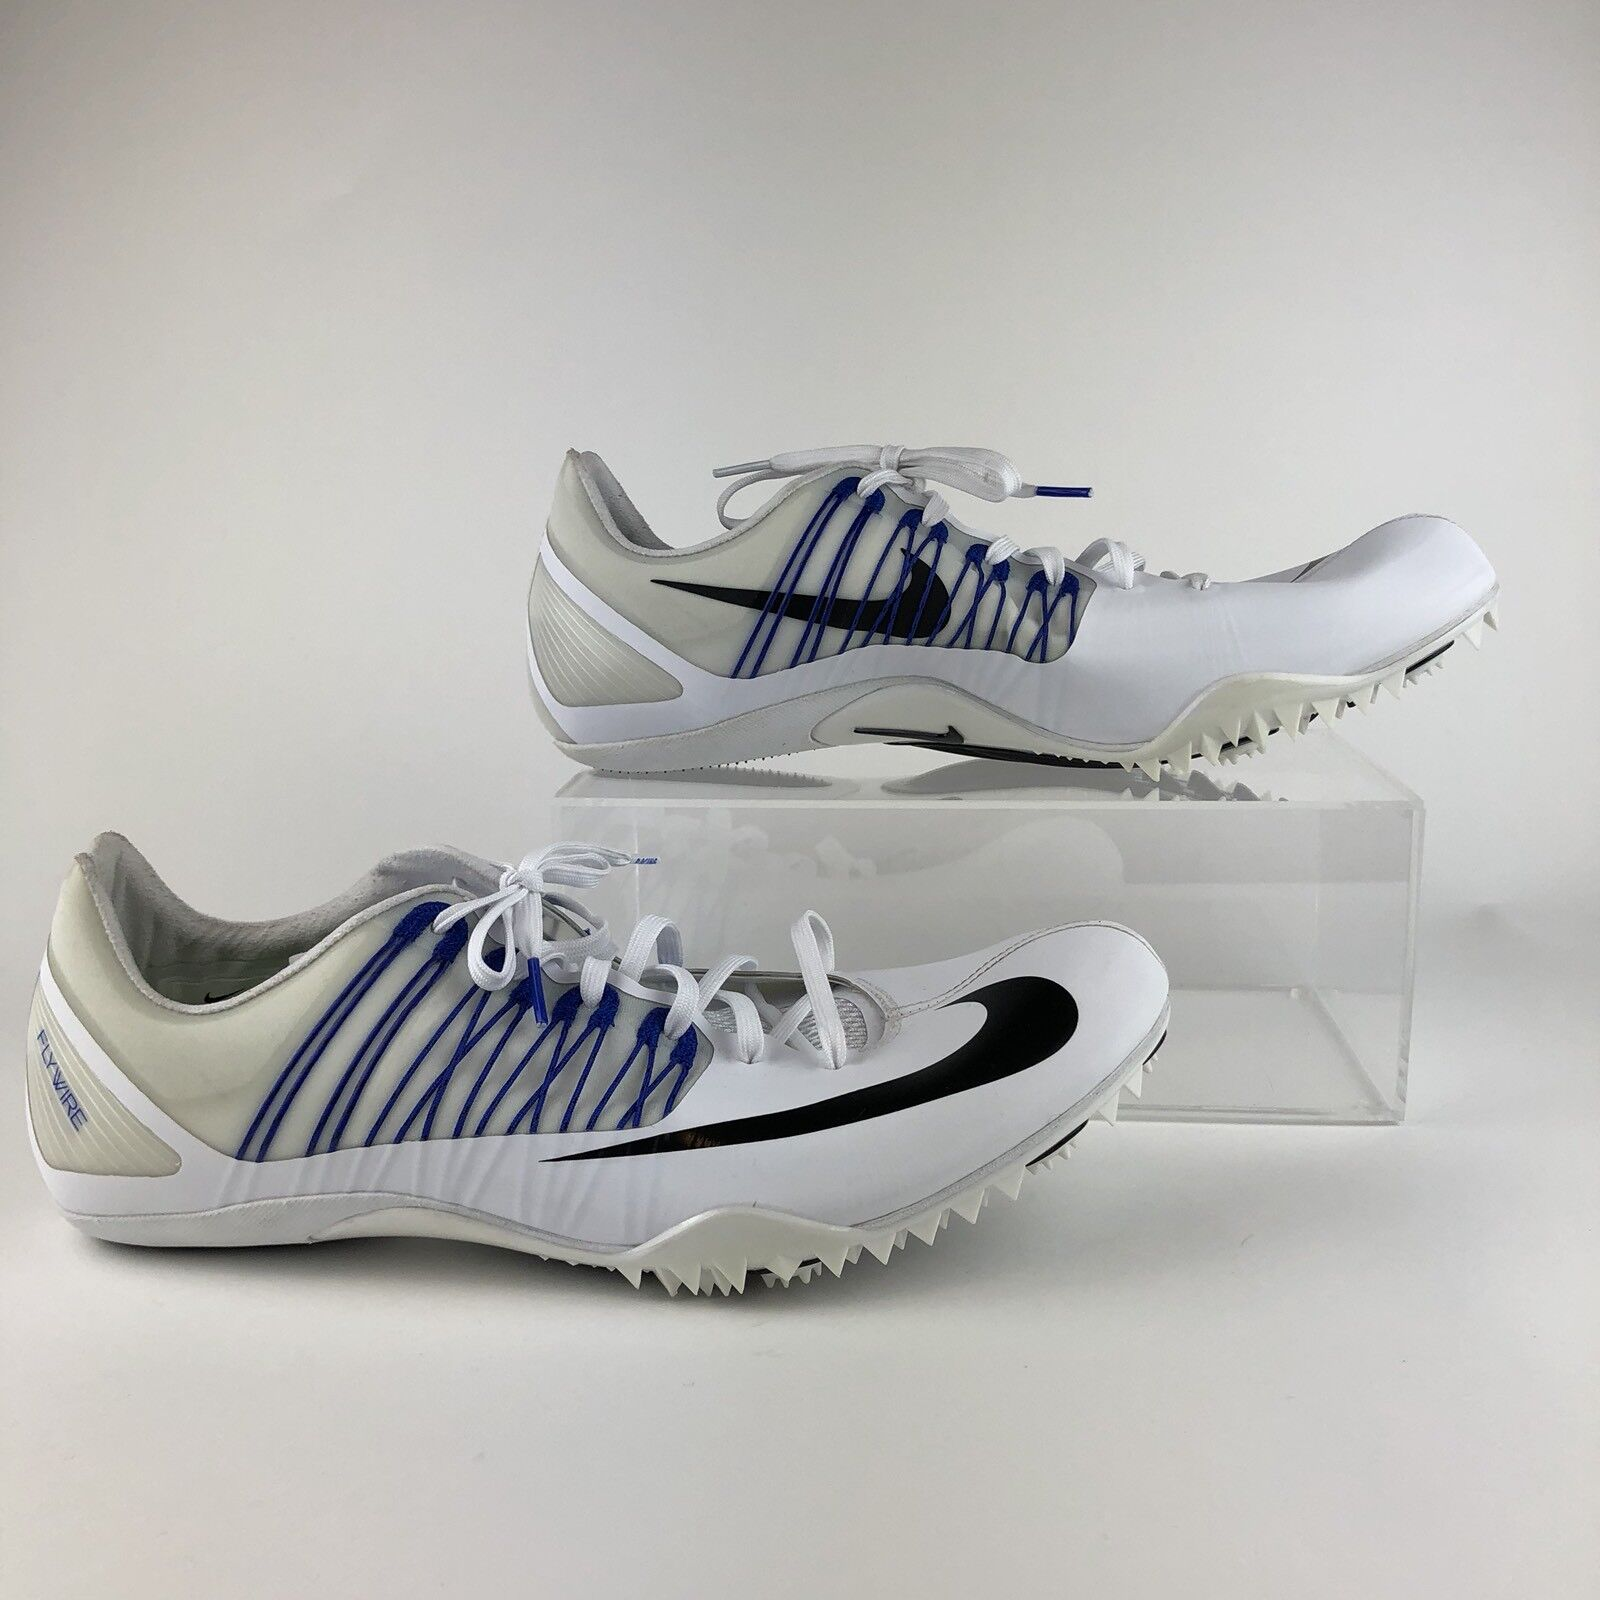 Nike Zoom Cleats Celar 5 Track Sprint Shoes spikes 629226-100 size 15 Mens white New shoes for men and women, limited time discount